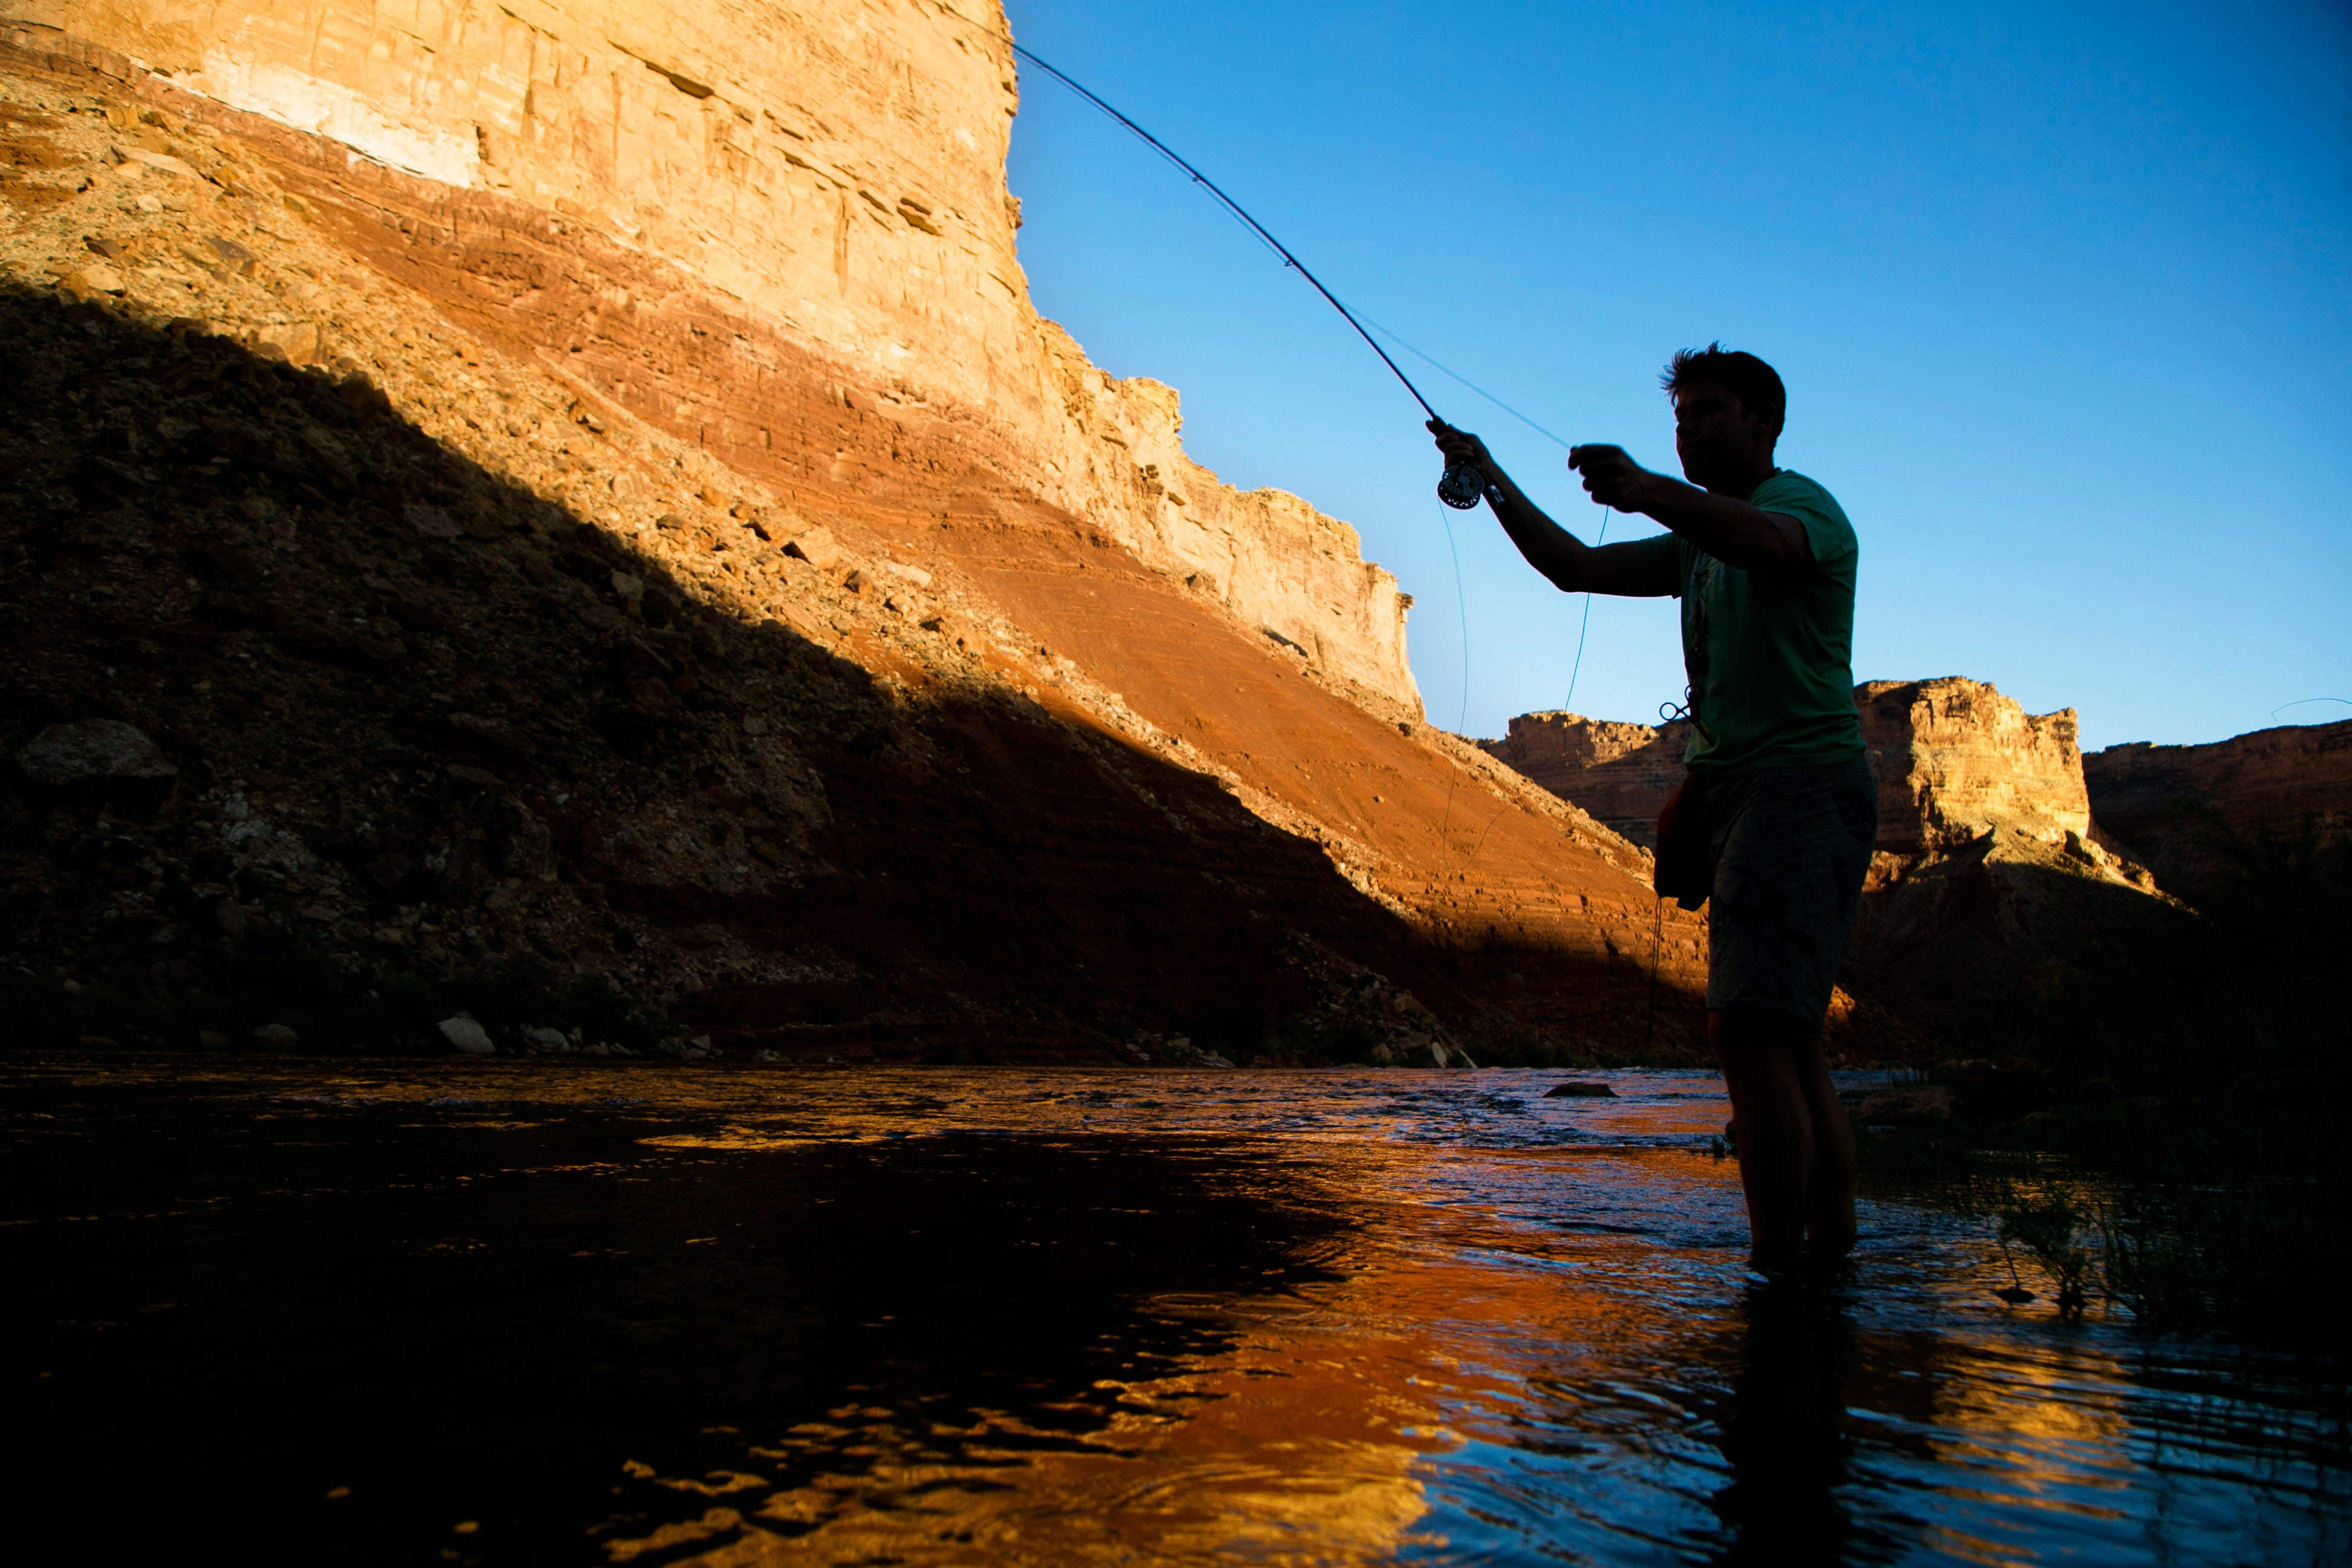 Stephen Sanborn fly fishes above Soap Creek Rapid in Grand Canyon National Park. Unlike the Colorado River's native humpback chubs, the popular rainbow trout drive jobs for fly-fishing guides and innkeepers in the area.